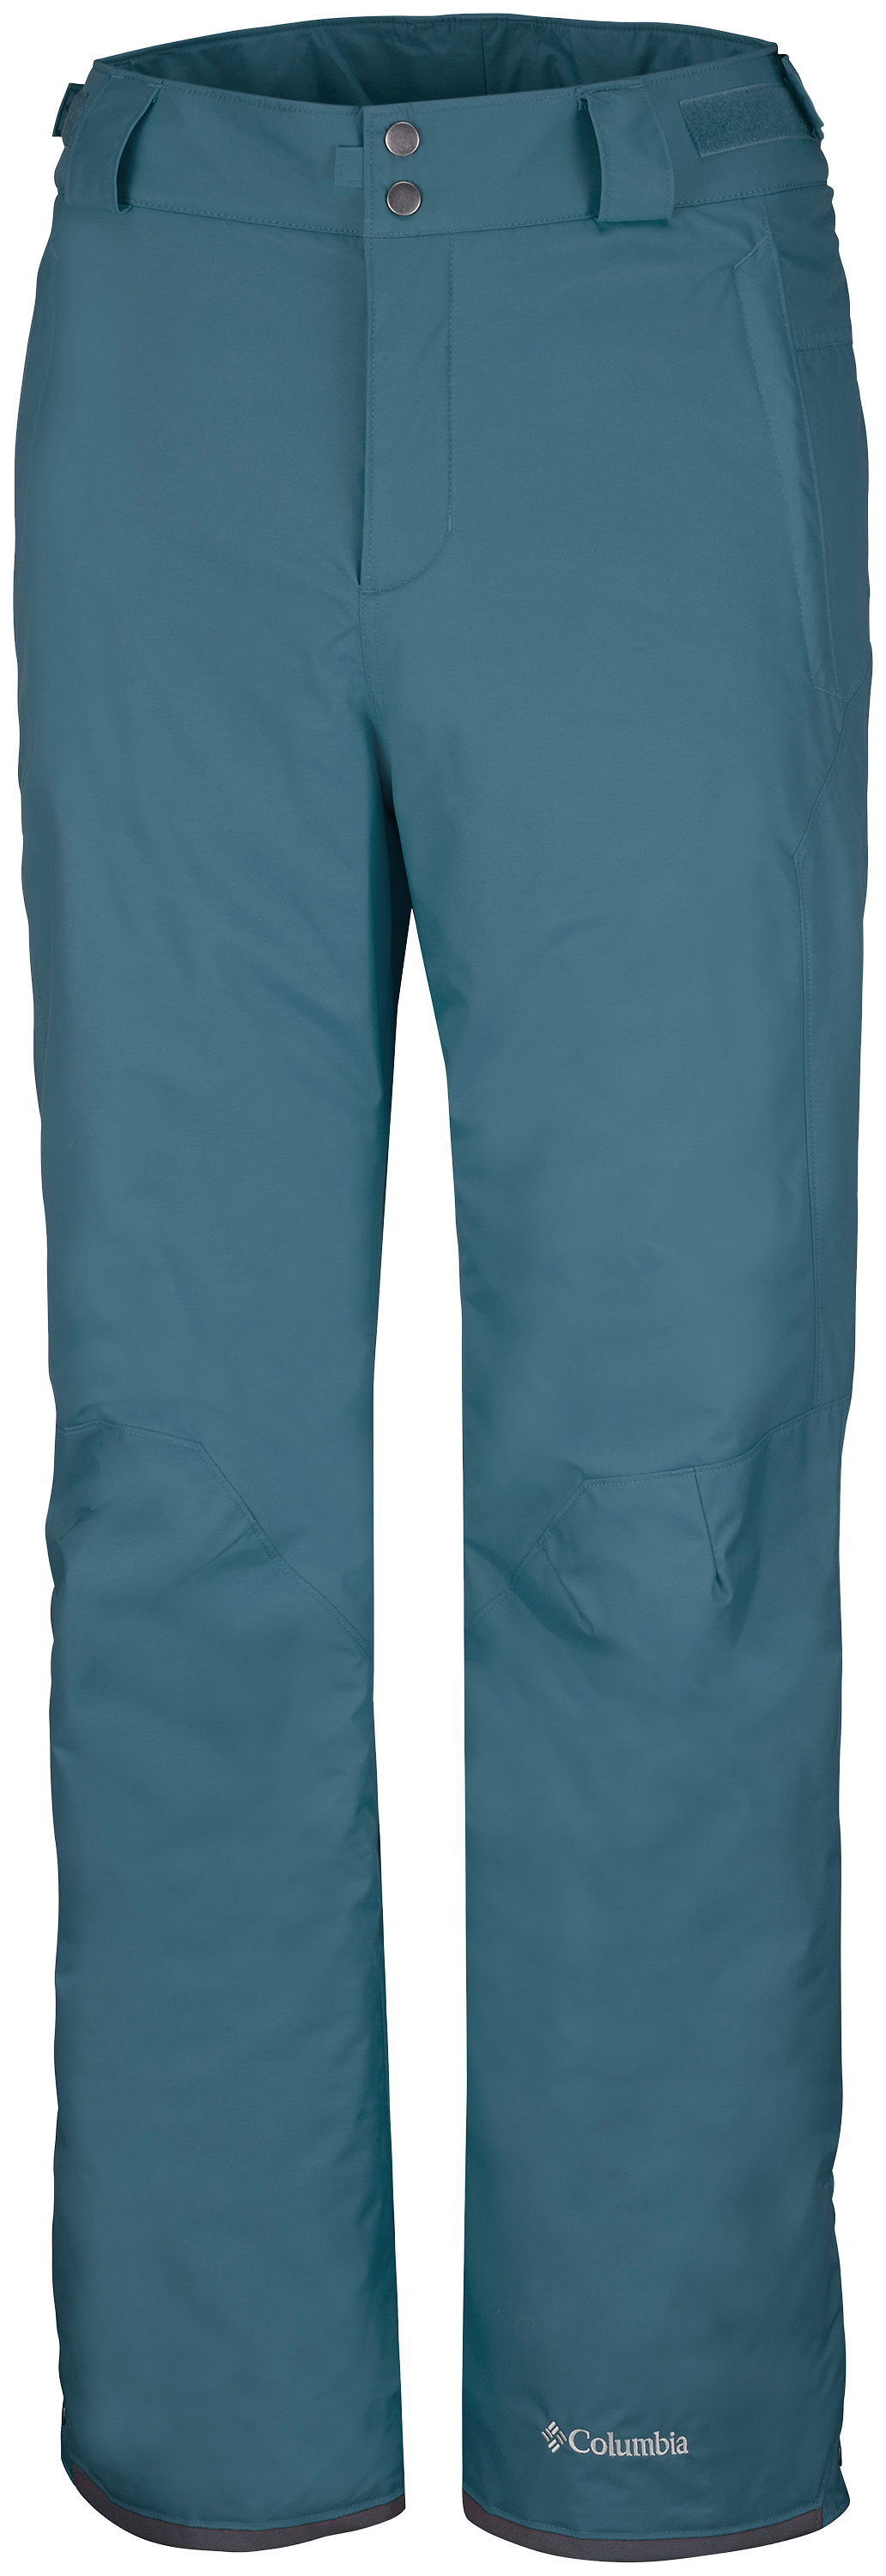 Columbia-Sportswear-Bugaboo-Pant-Big-Tall-Mens-Snow-Ski-Waterproof-Pant-Graphite.jpg